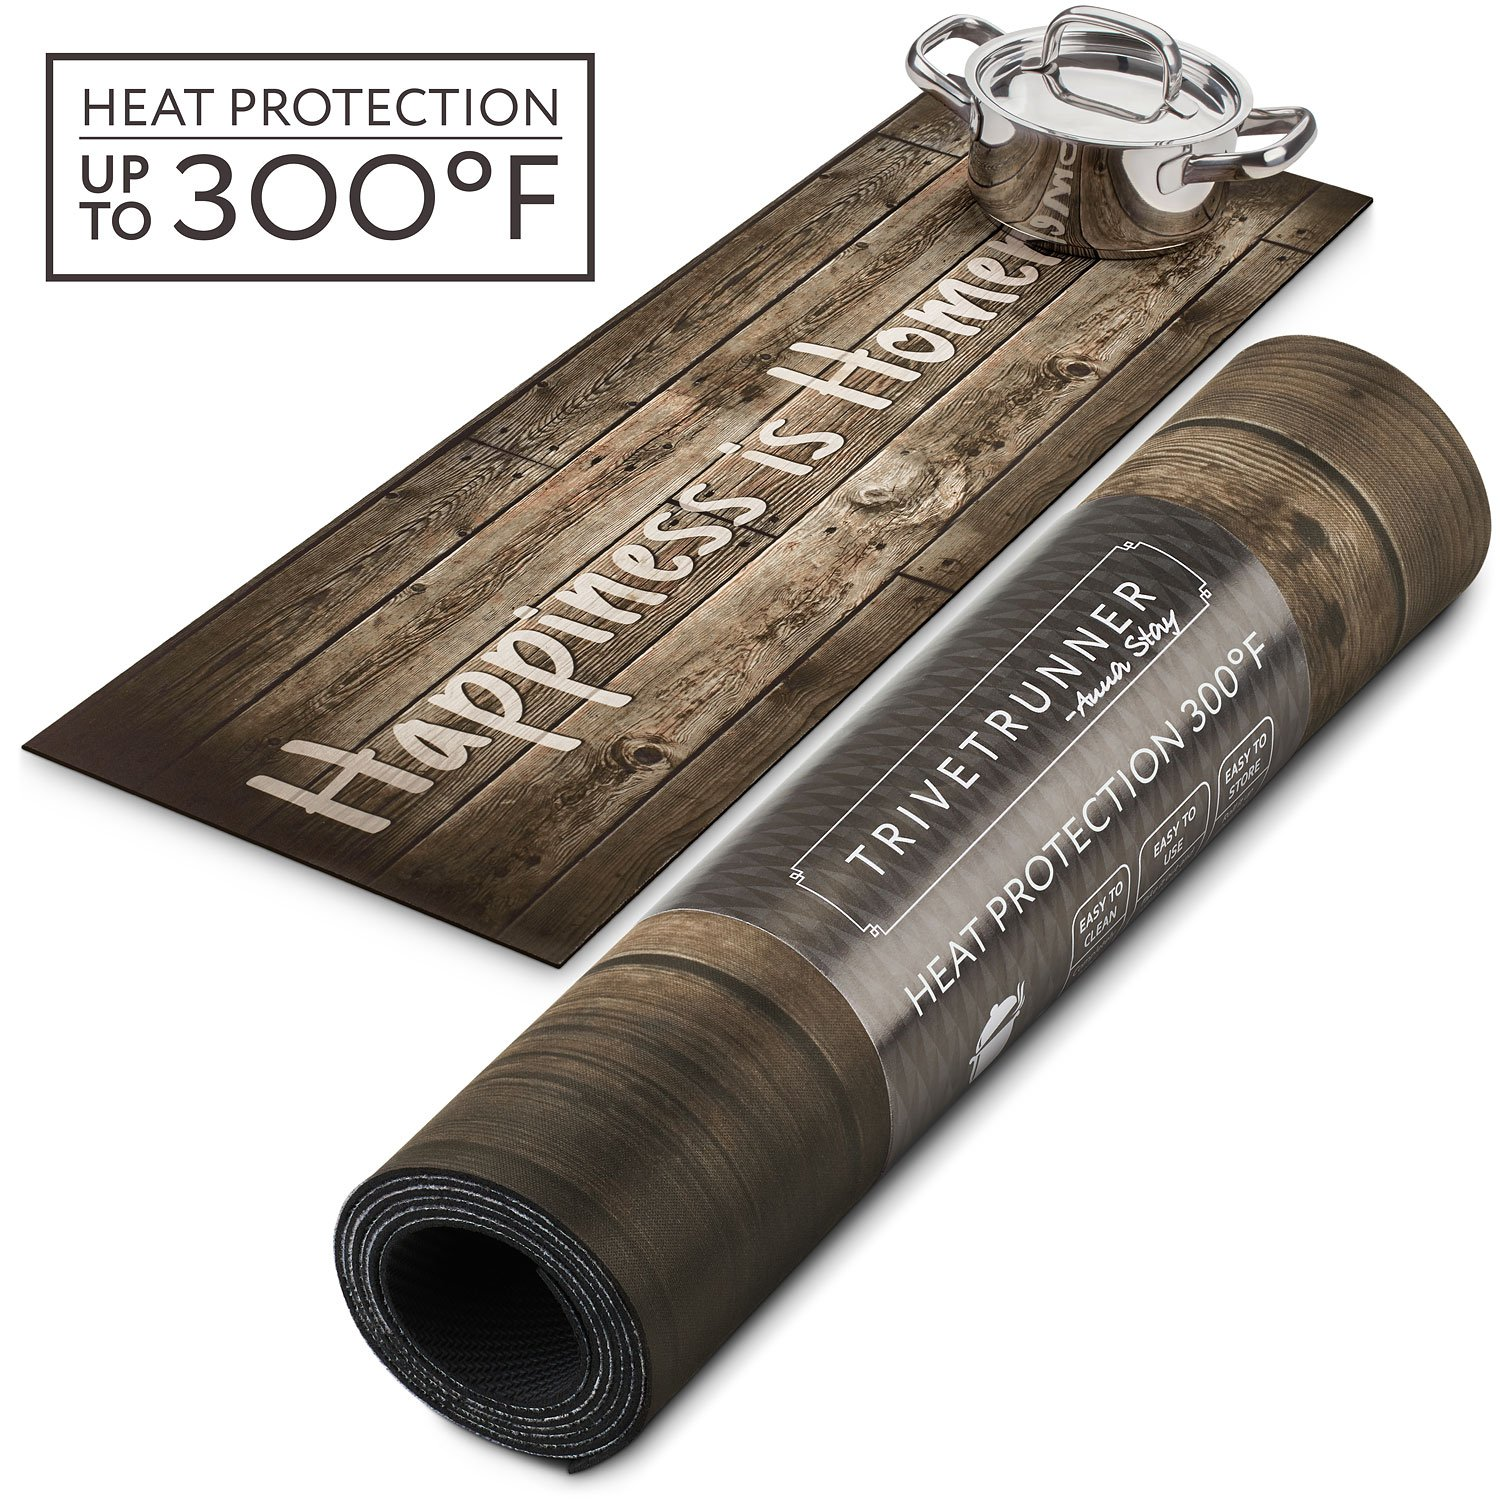 TRIVETRUNNER Farmhouse Decorative Trivet and Kitchen Table Runners Handles Heat Up to 300F, Anti Slip, Hand Washable, and Convenient for Hot Dishes and Pots,Hand Washable (wood rustic)